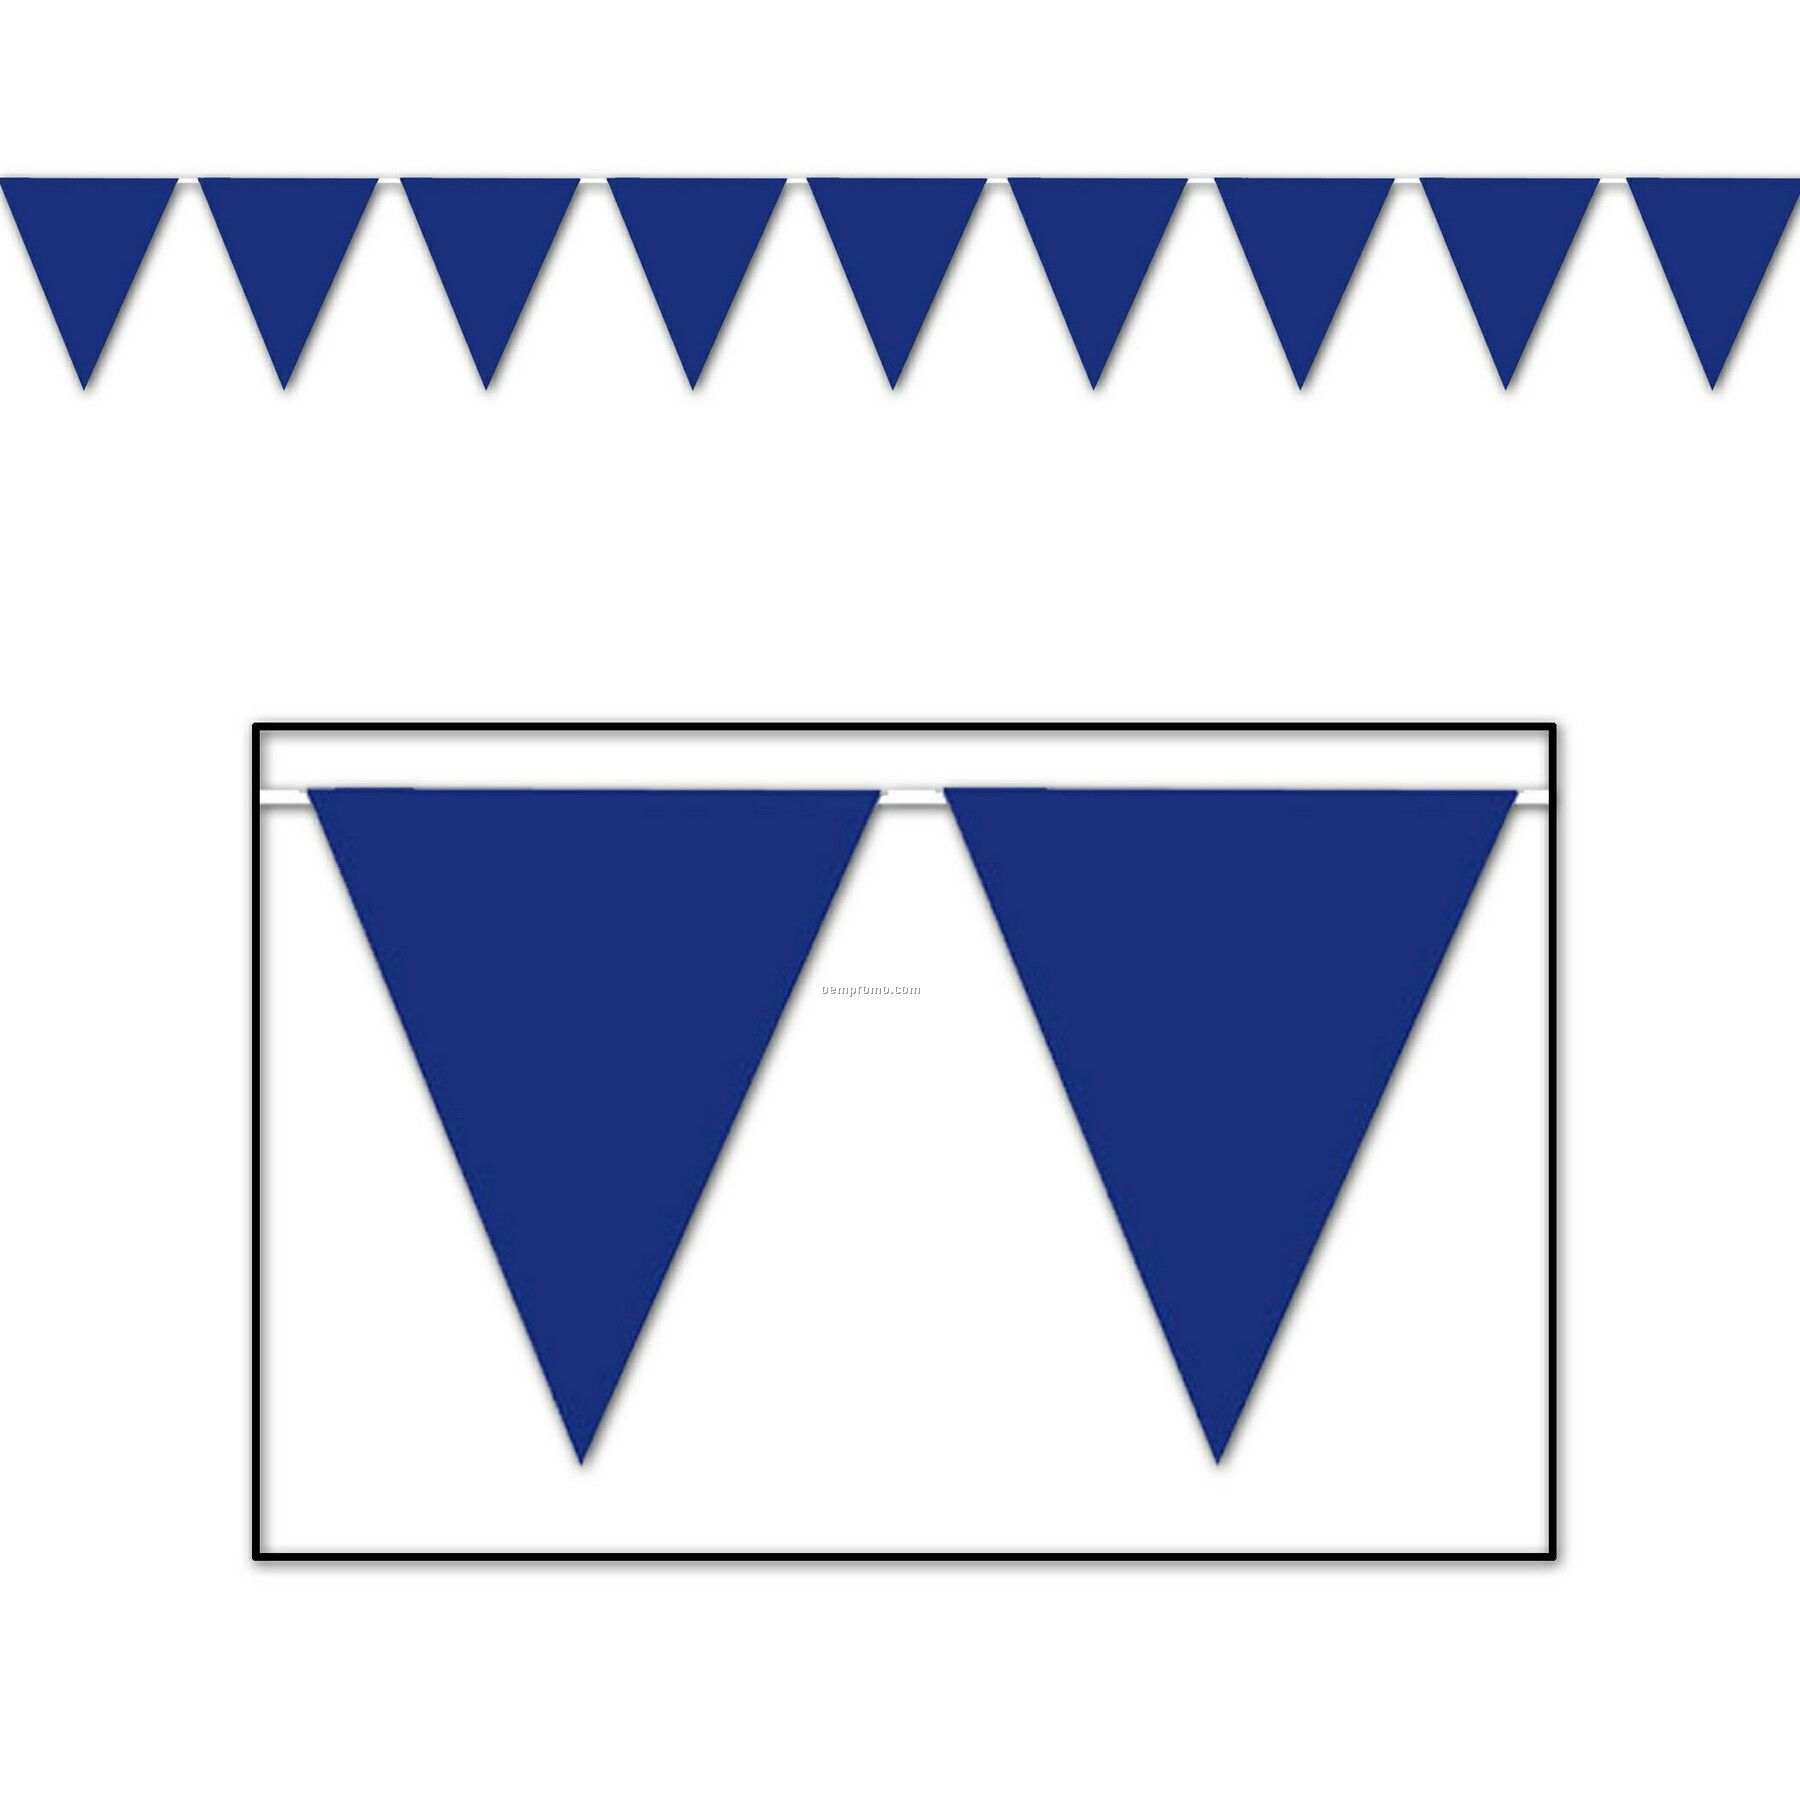 Pendent clipart blue flag 58) Outdoor Pennant Wholesale Pennants